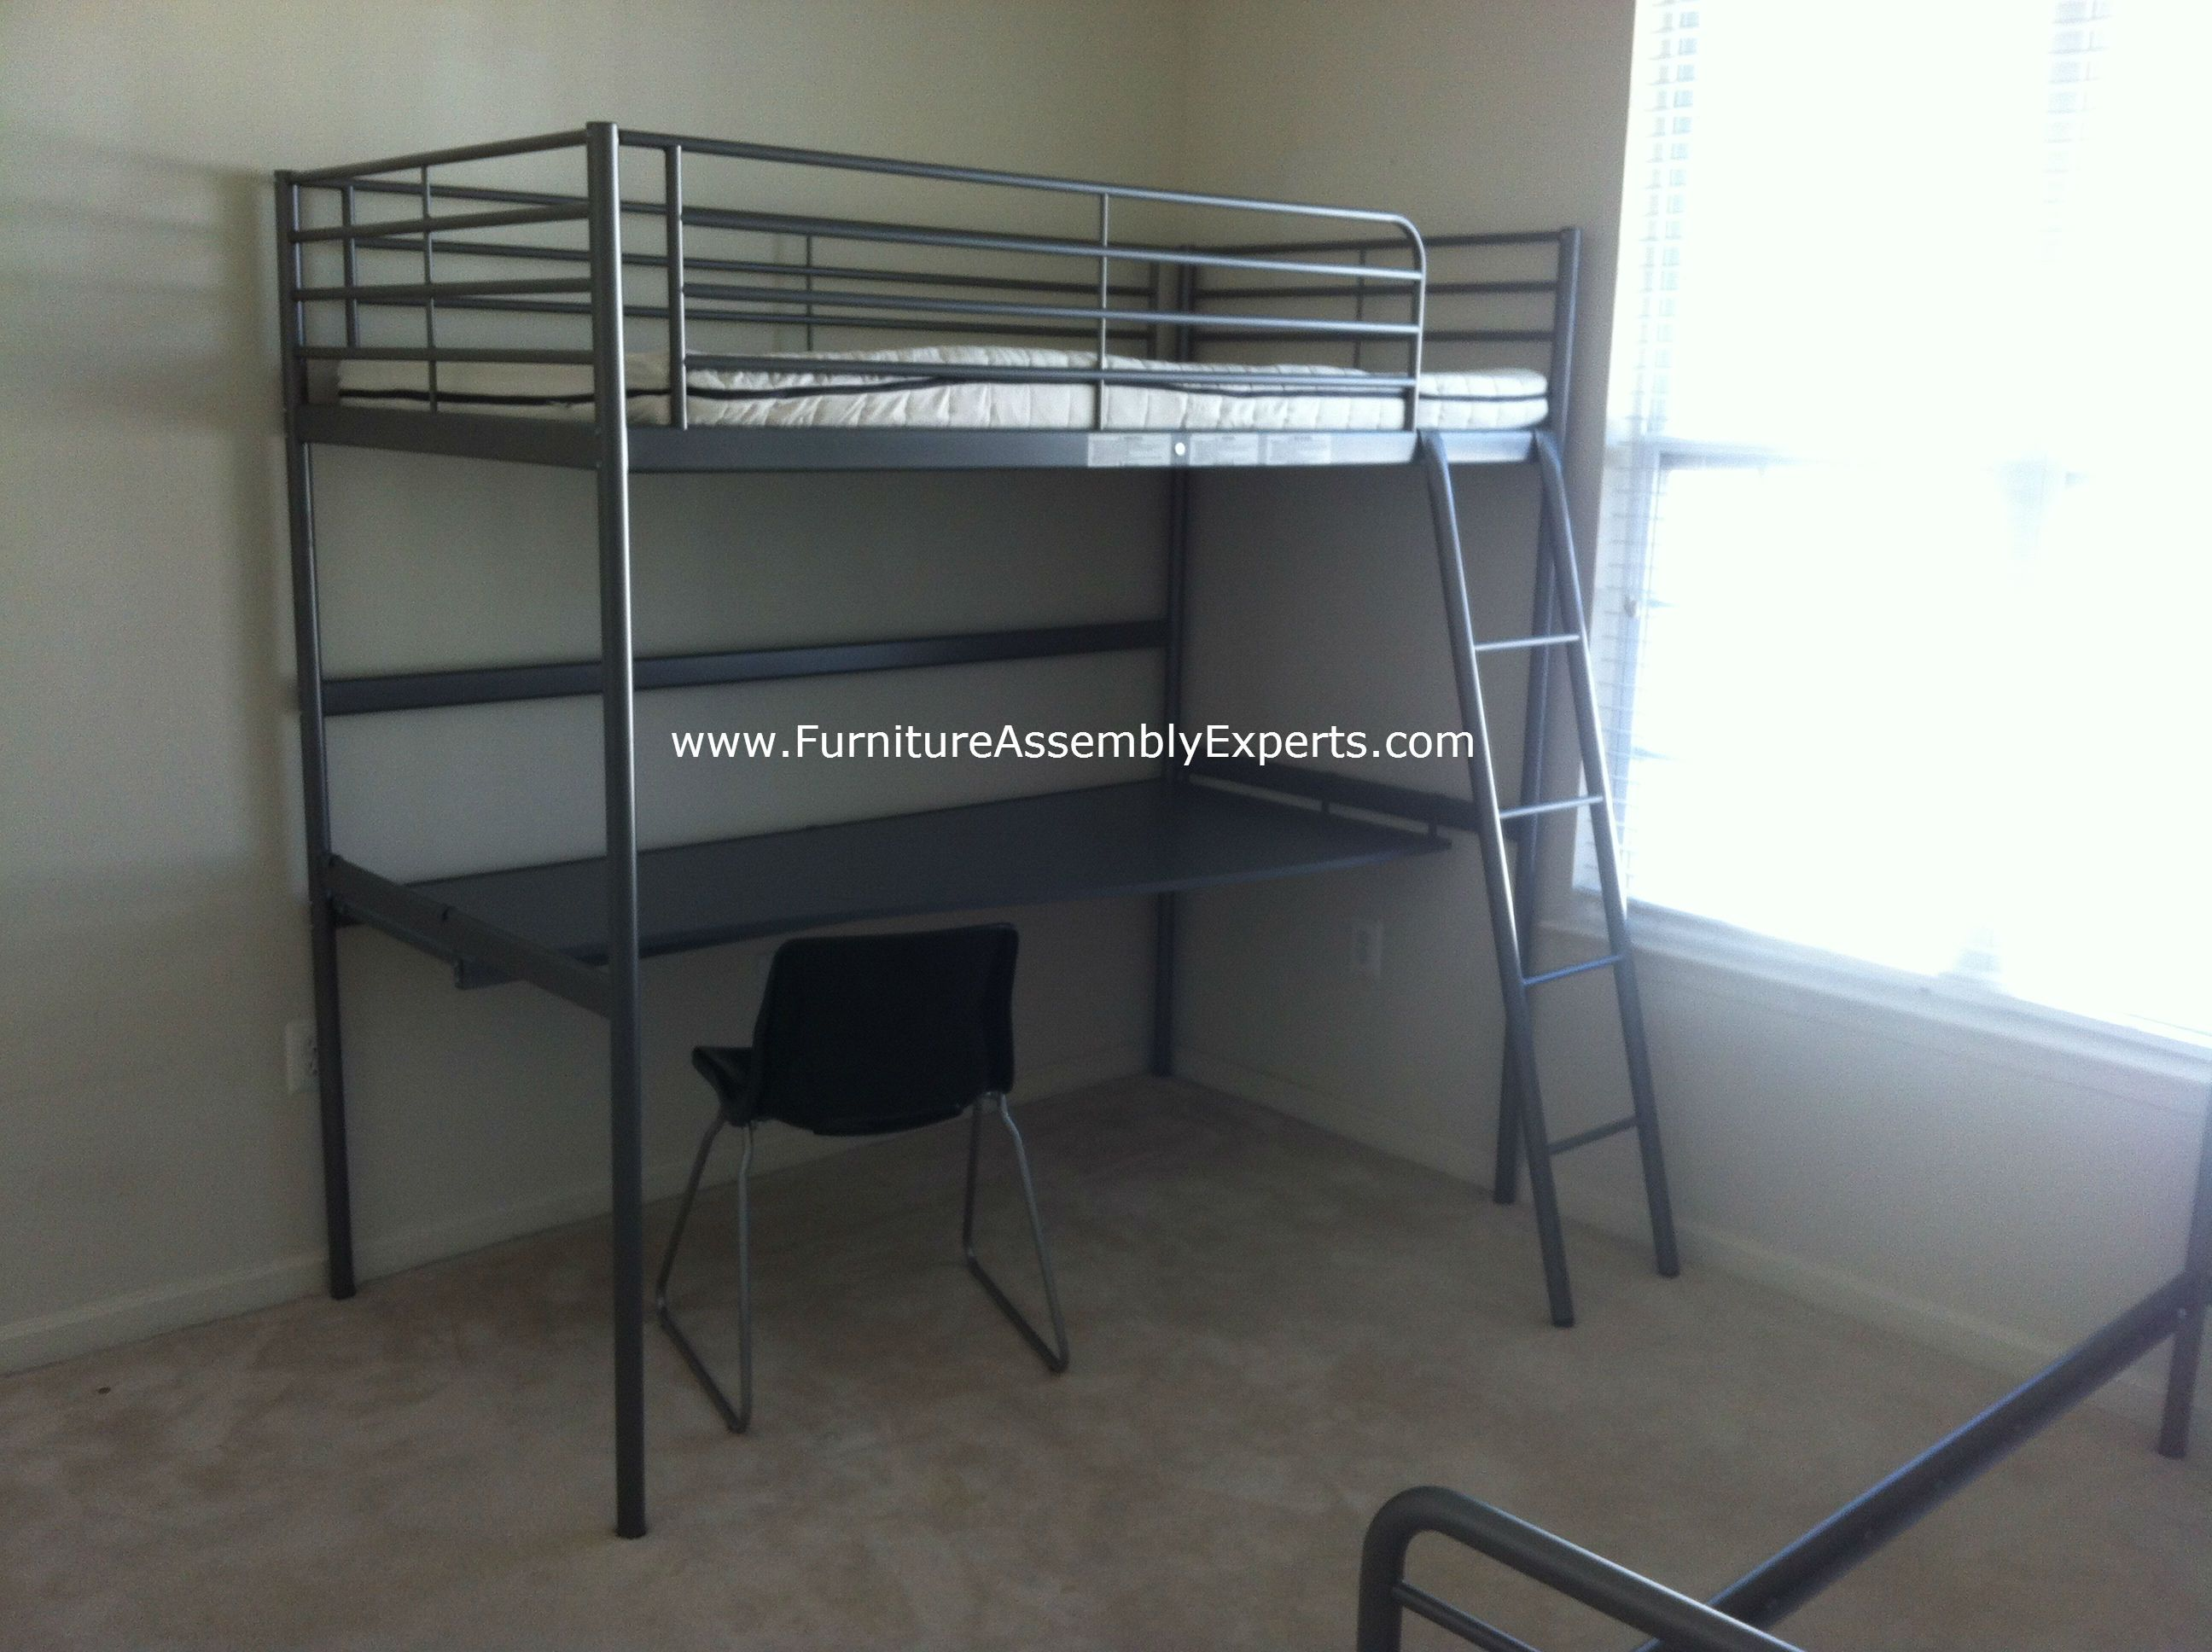 Ikea Loft Bed With Desk Assembled In Washington Dc By Furniture Assembly Experts Llc Call